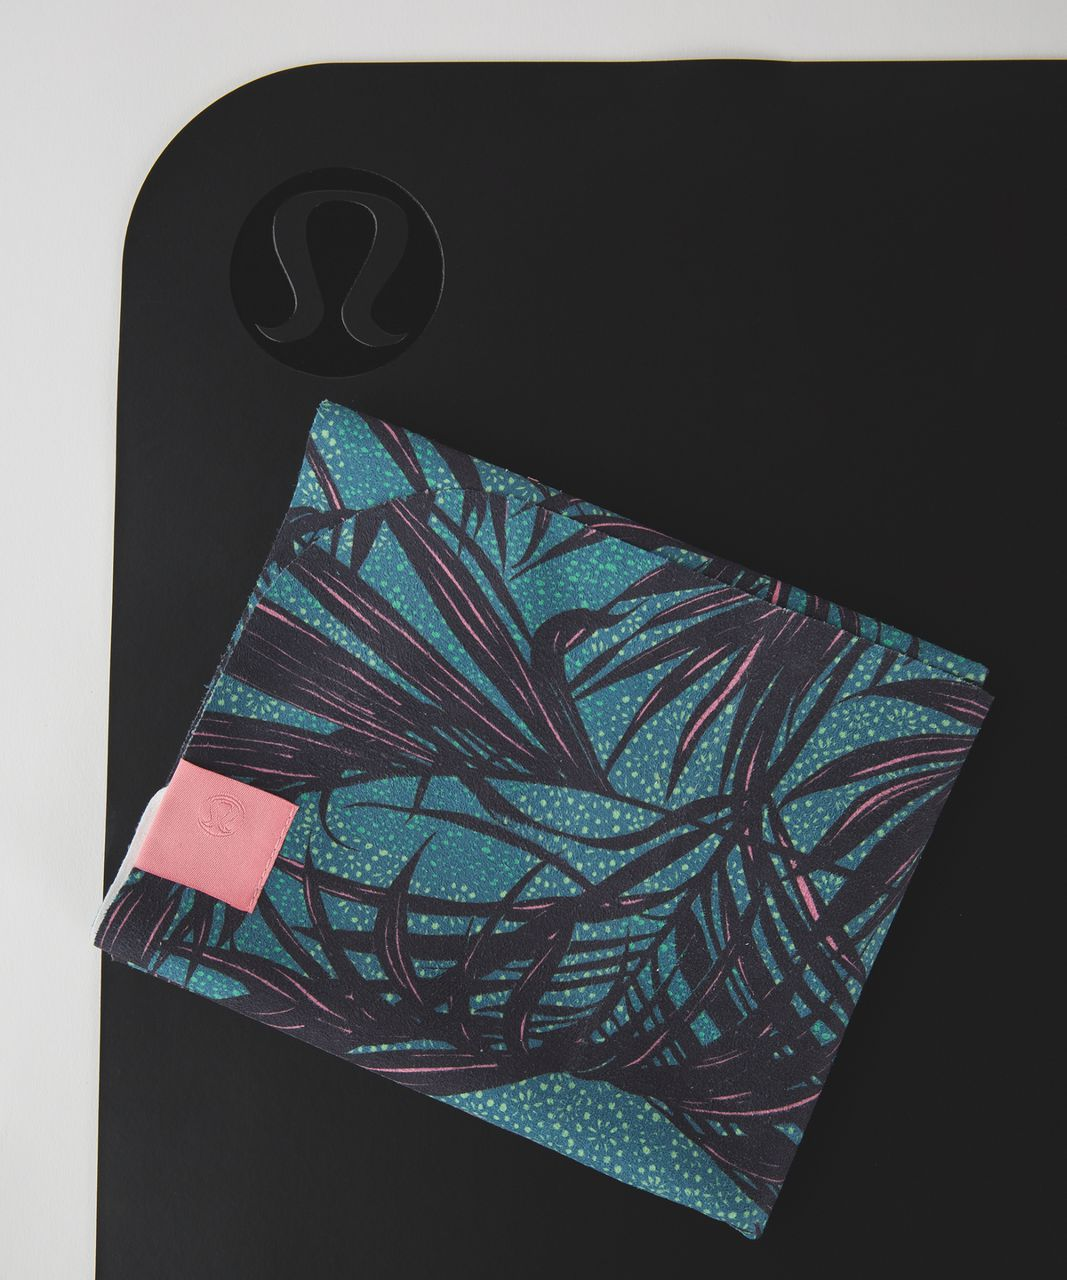 Lululemon The (Small) Towel - Palm Lace Tofino Teal Multi